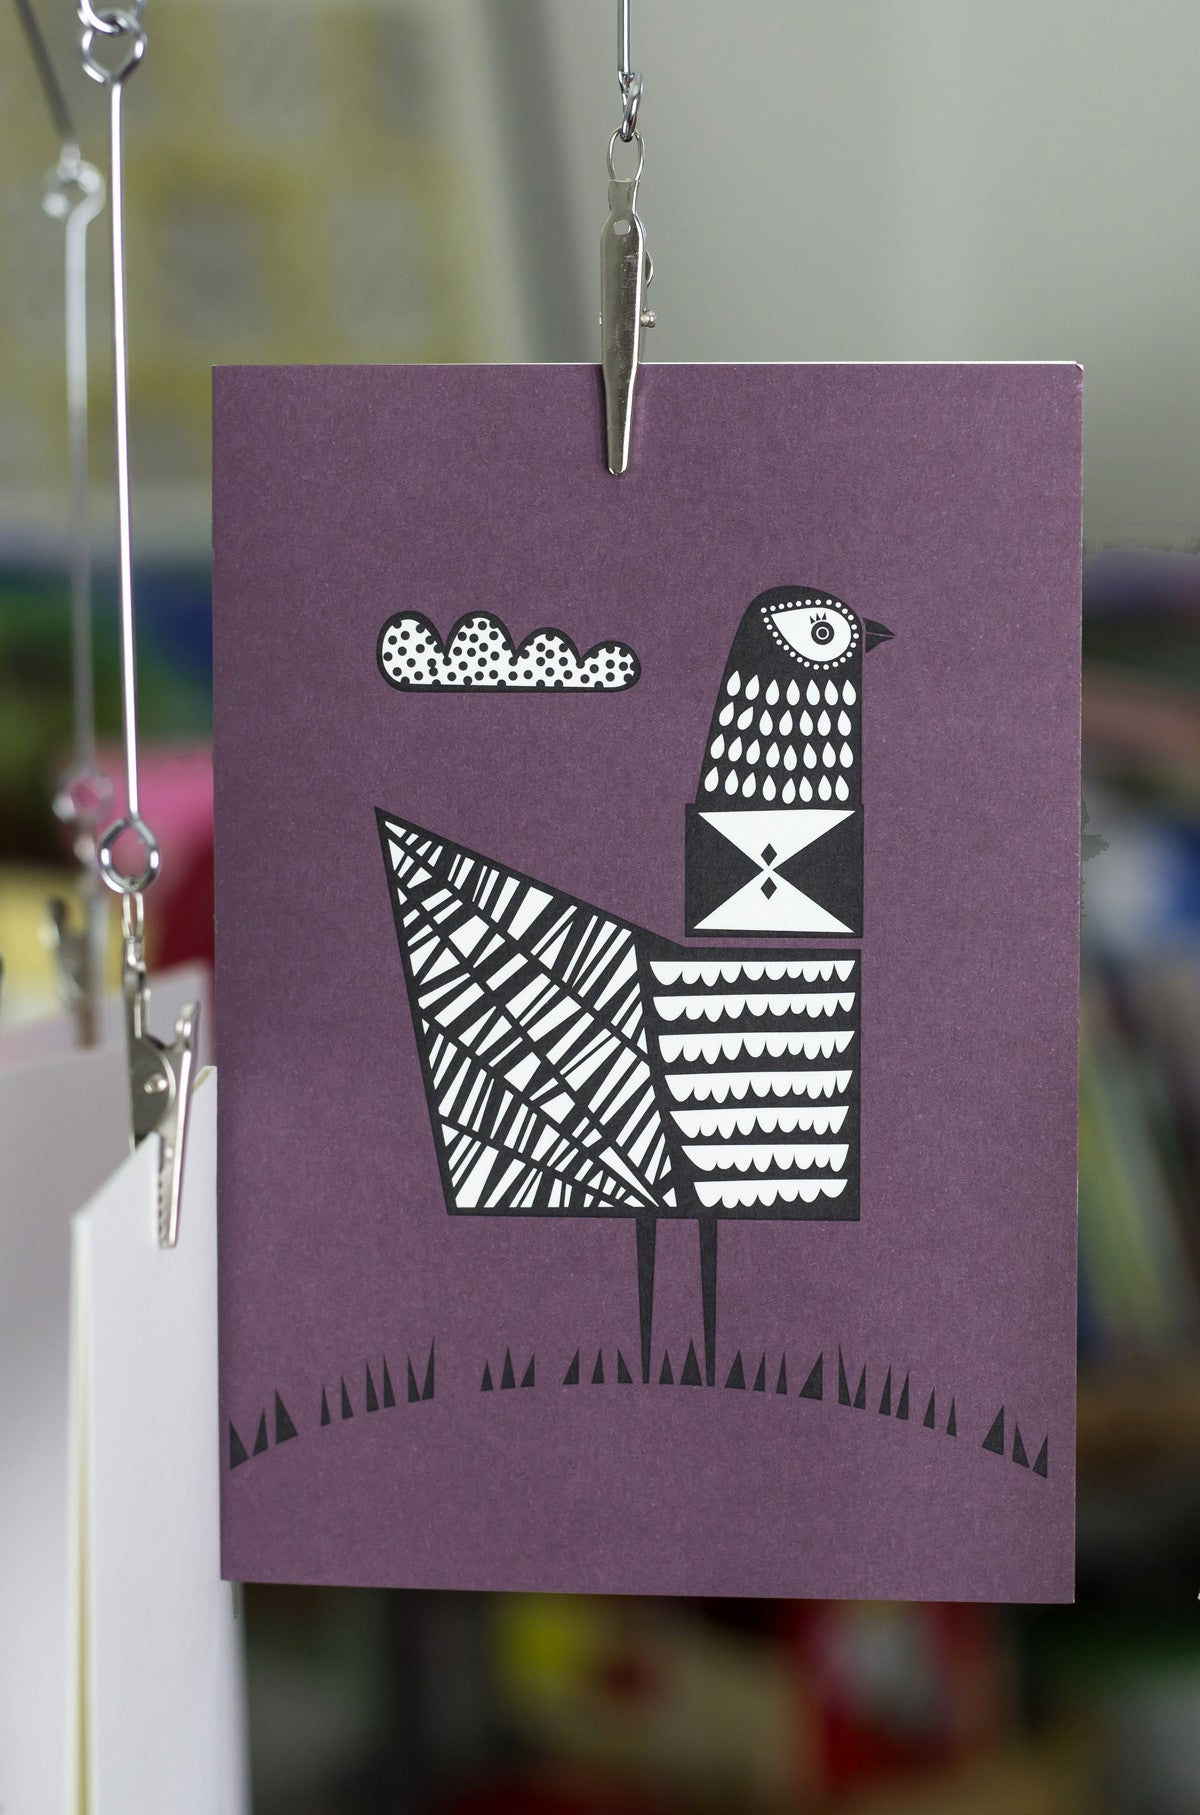 THIS IS A PICTURE OF A BIRD CARD